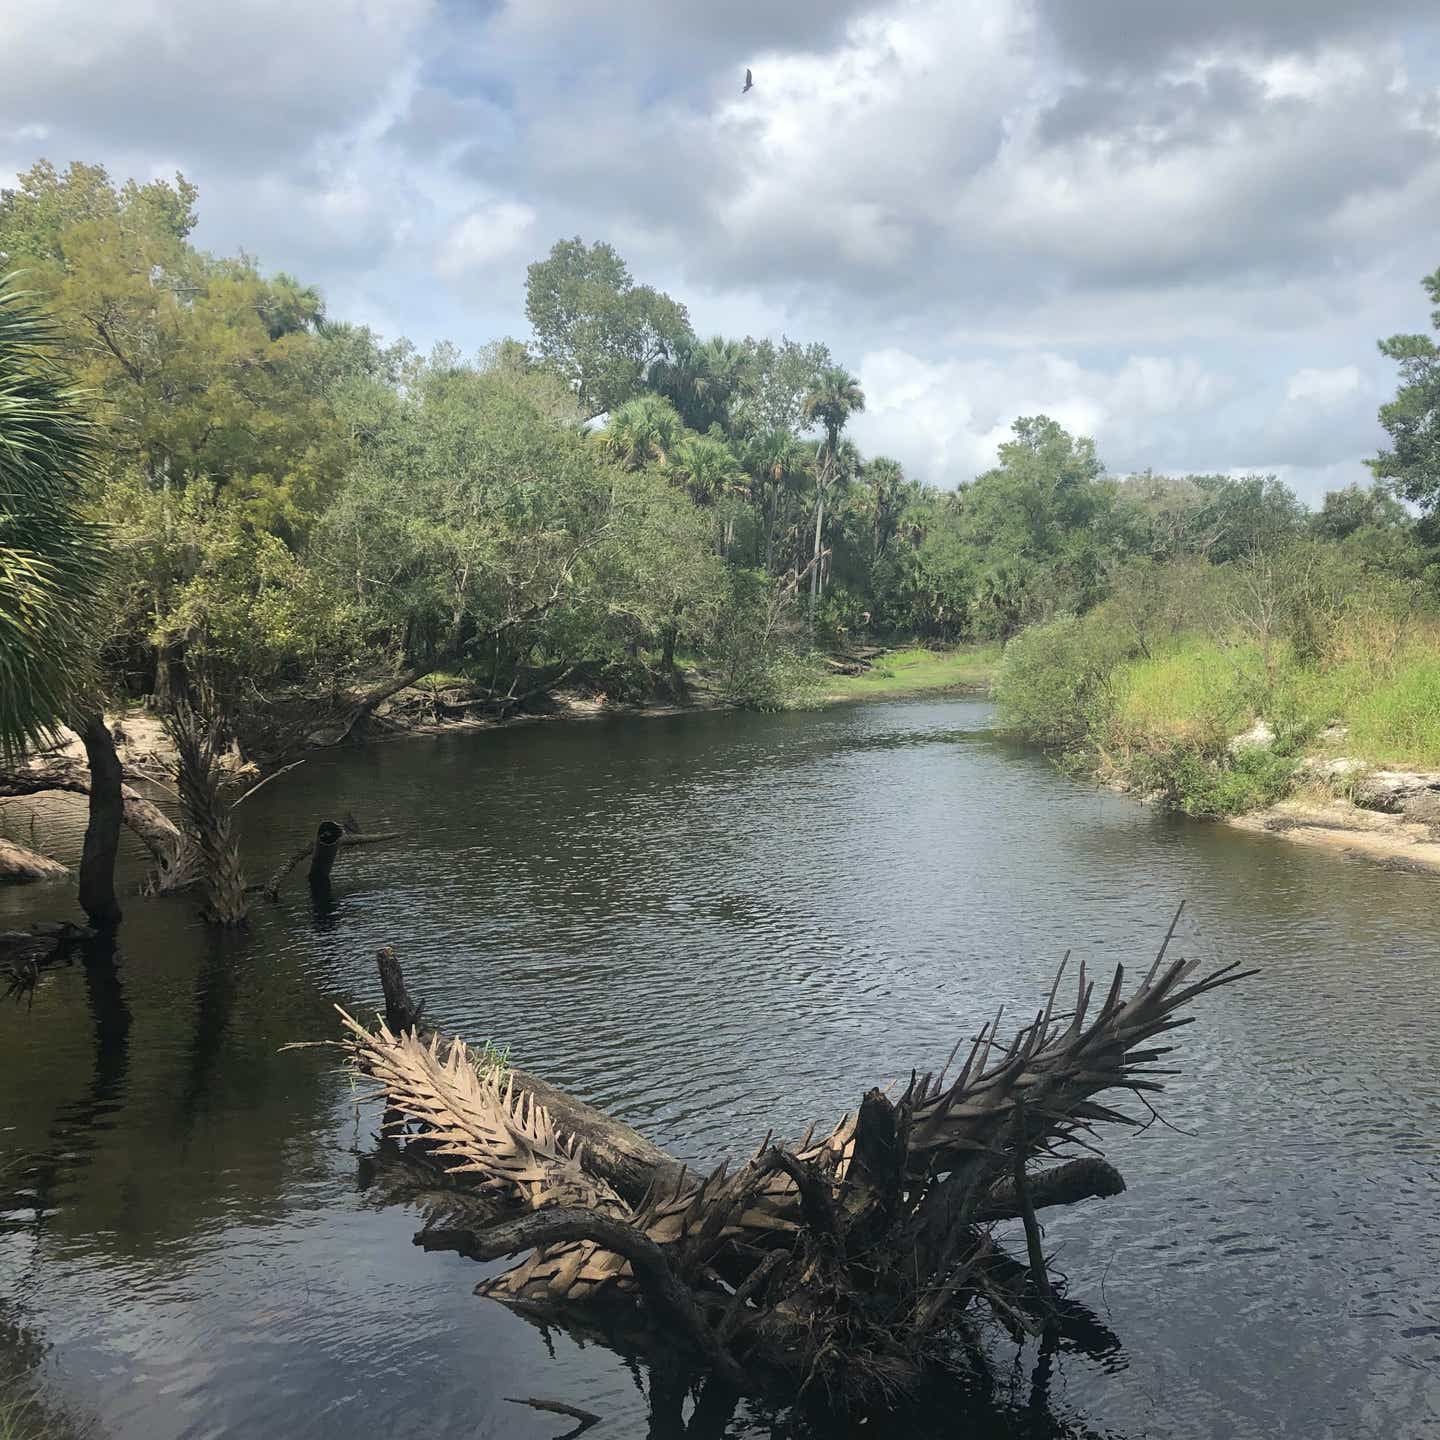 River view at Little Econ State Forest in Orlando, Florida.